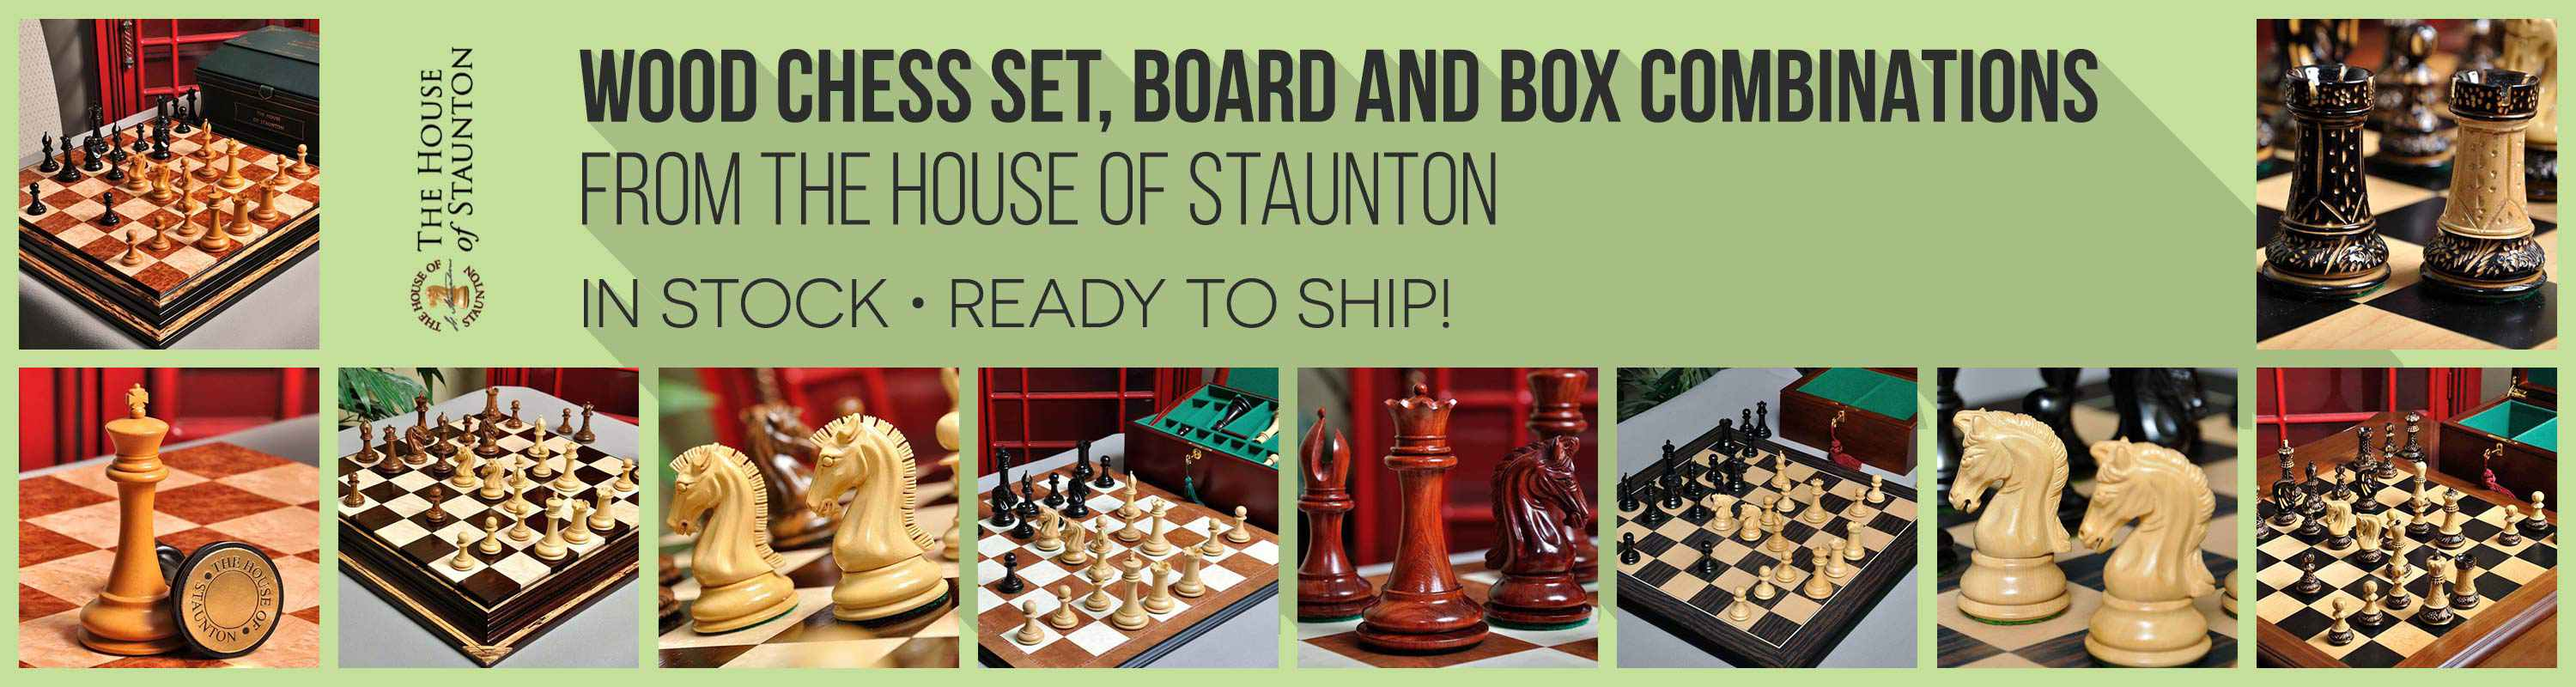 Wood Chess set, Board, and Box Combinations from The House of Staunton